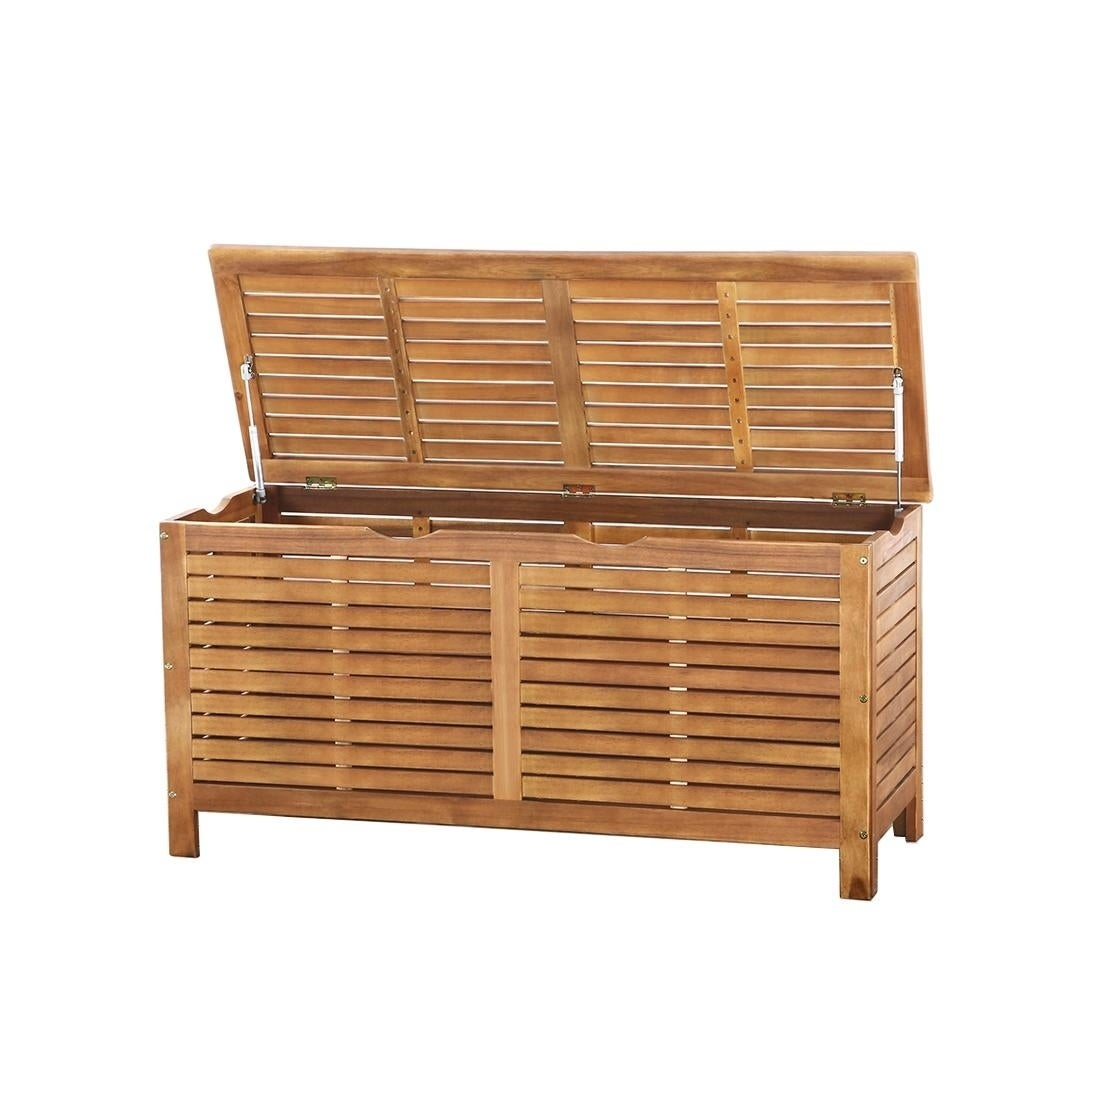 Miraculous Garden Furniture Cushion Storage Box Wooden Riviera Evergreenethics Interior Chair Design Evergreenethicsorg